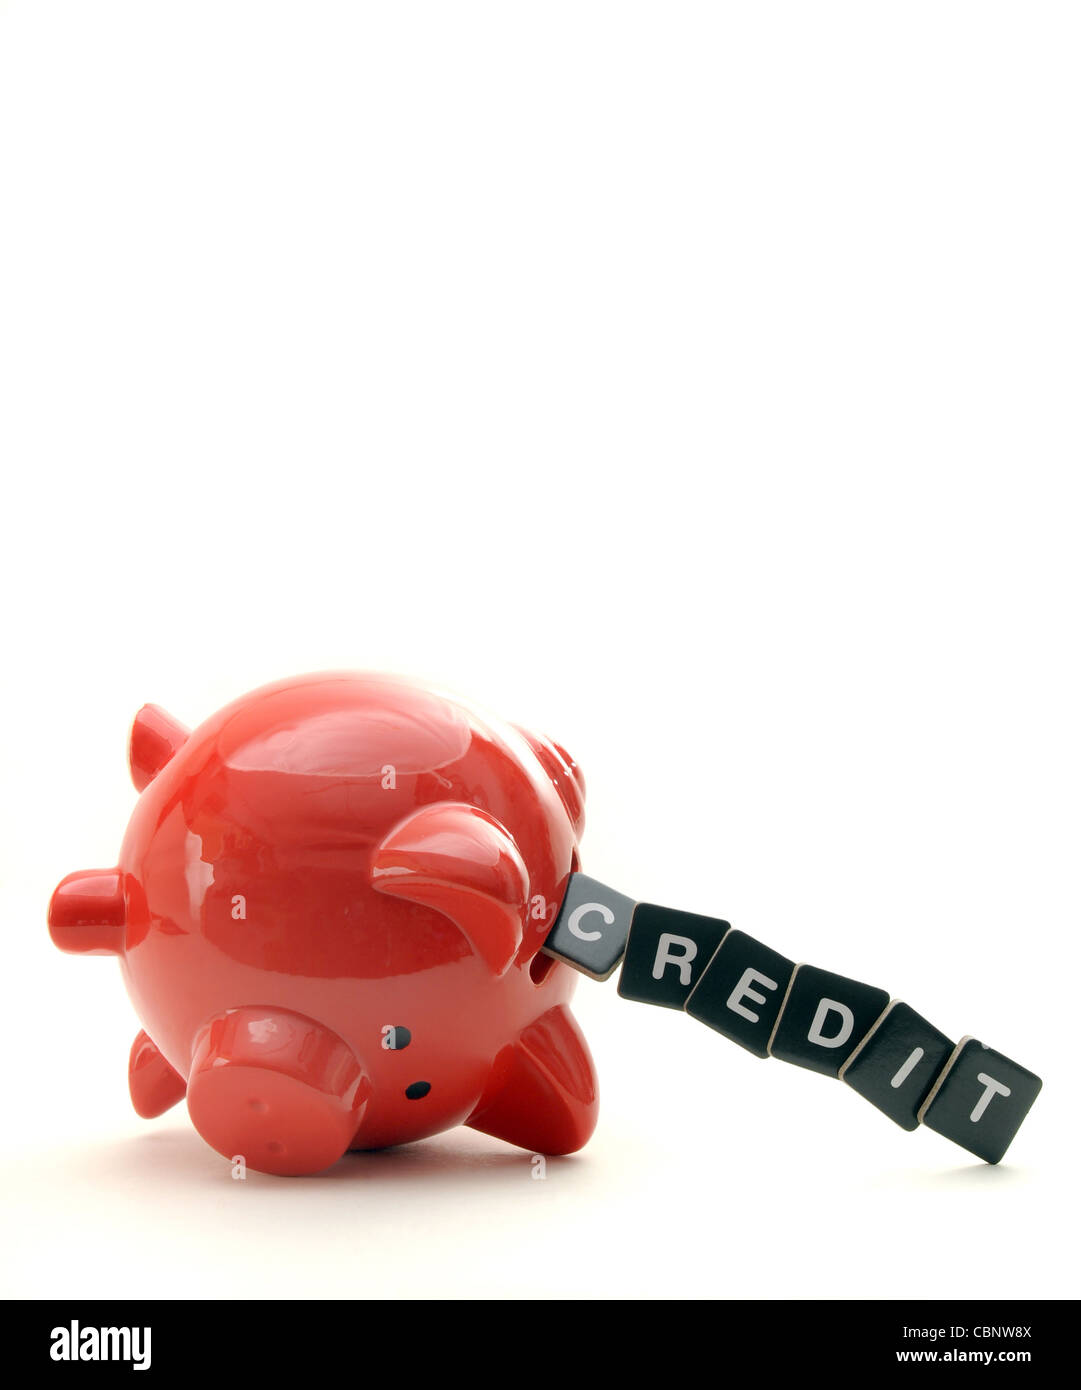 OVERTURNED RED PIGGYBANK WITH LETTERS SPELLING  CREDIT  RE THE ECONOMY CREDIT CRUNCH SAVINGS LOANS DEBT FINANCIAL - Stock Image